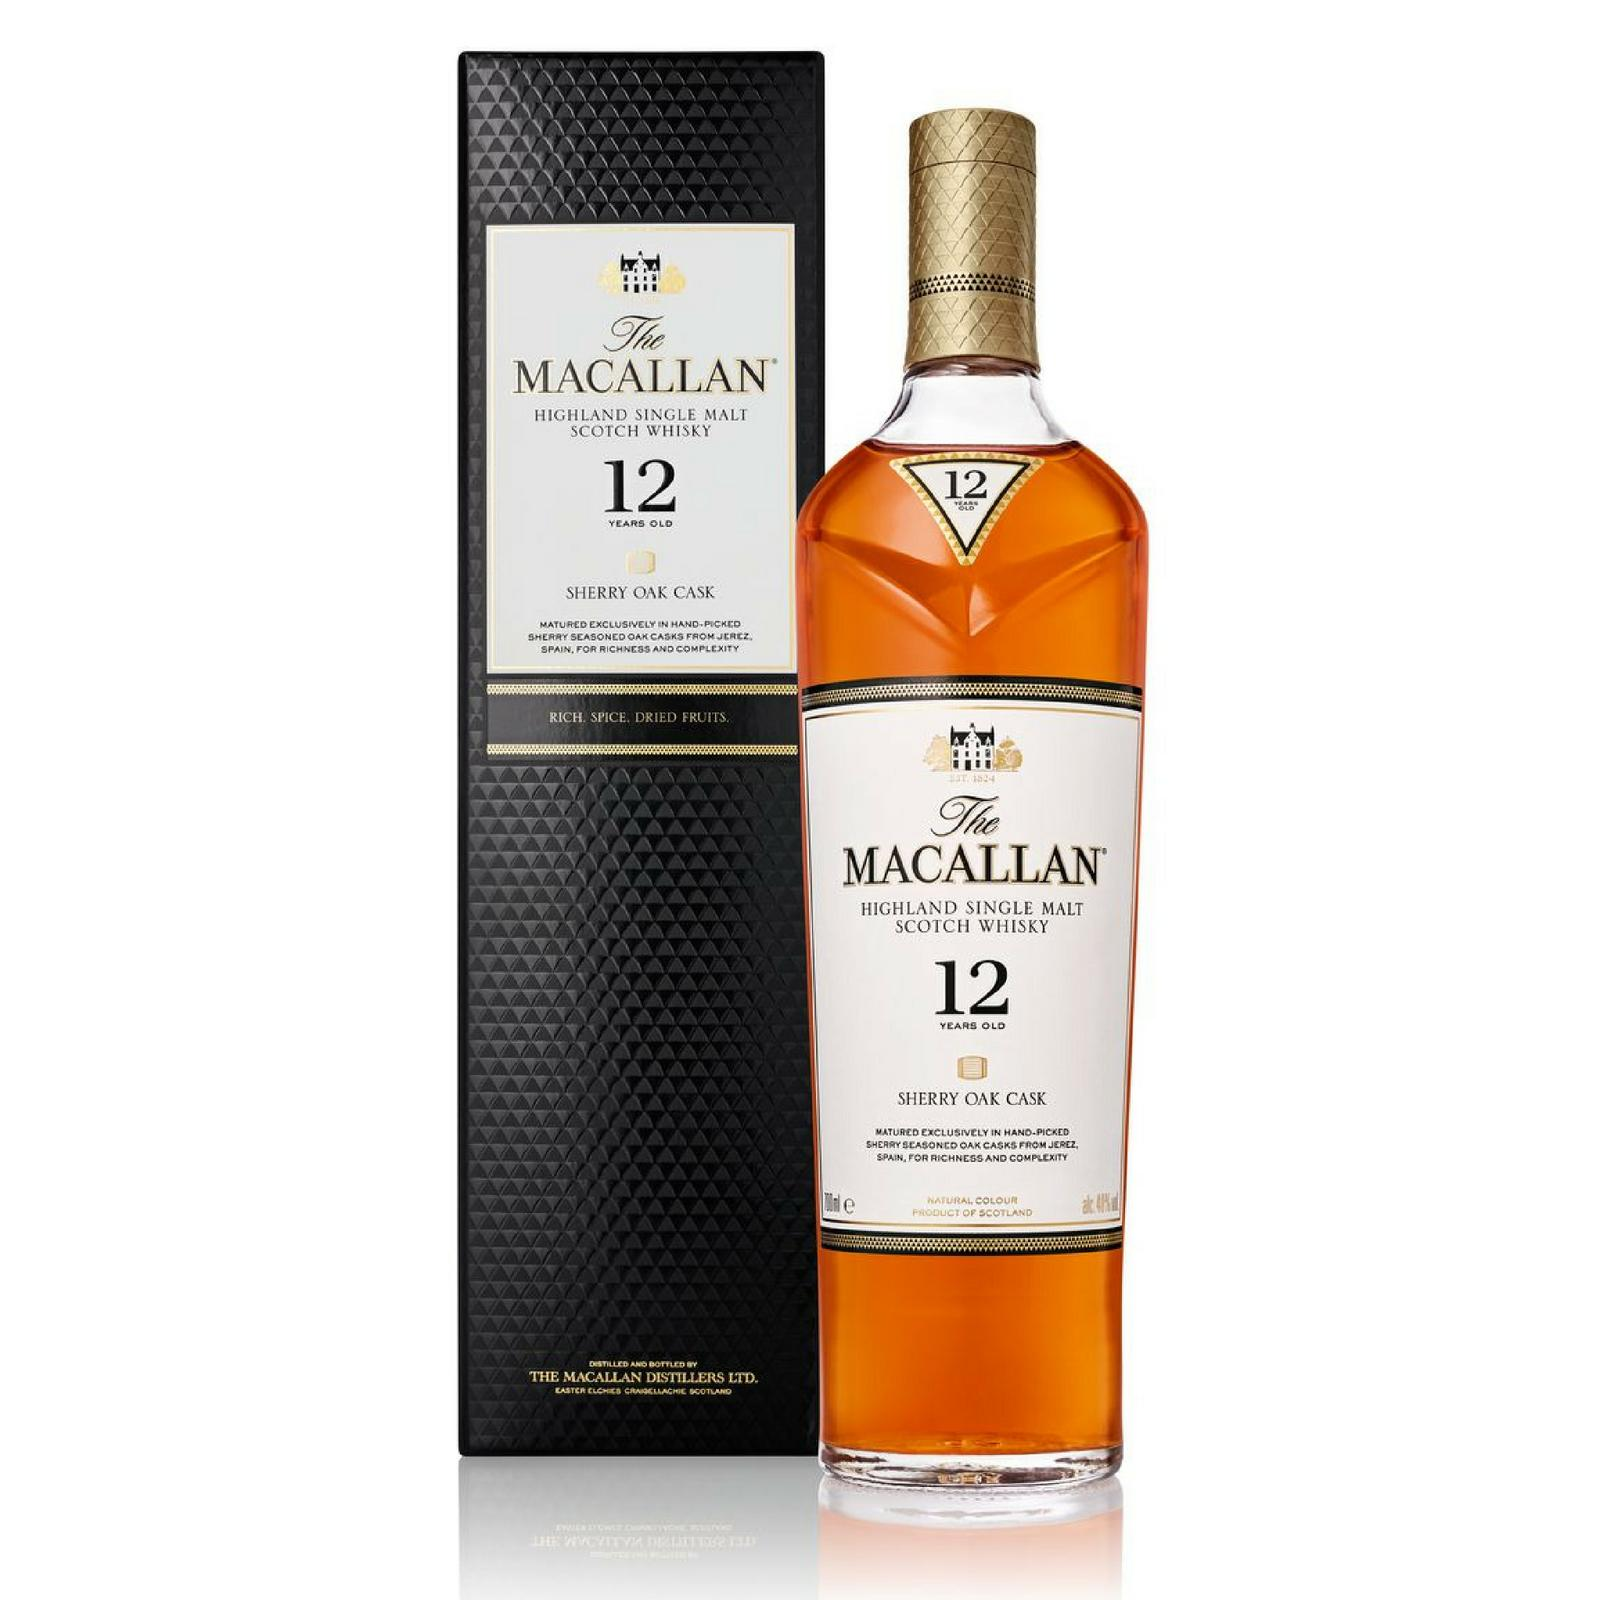 The Macallan 12 Years Old Sherry Oak Highland Single Malt Scotch Whisky 700ml By C&c Drinks Shop - Three Kraters.